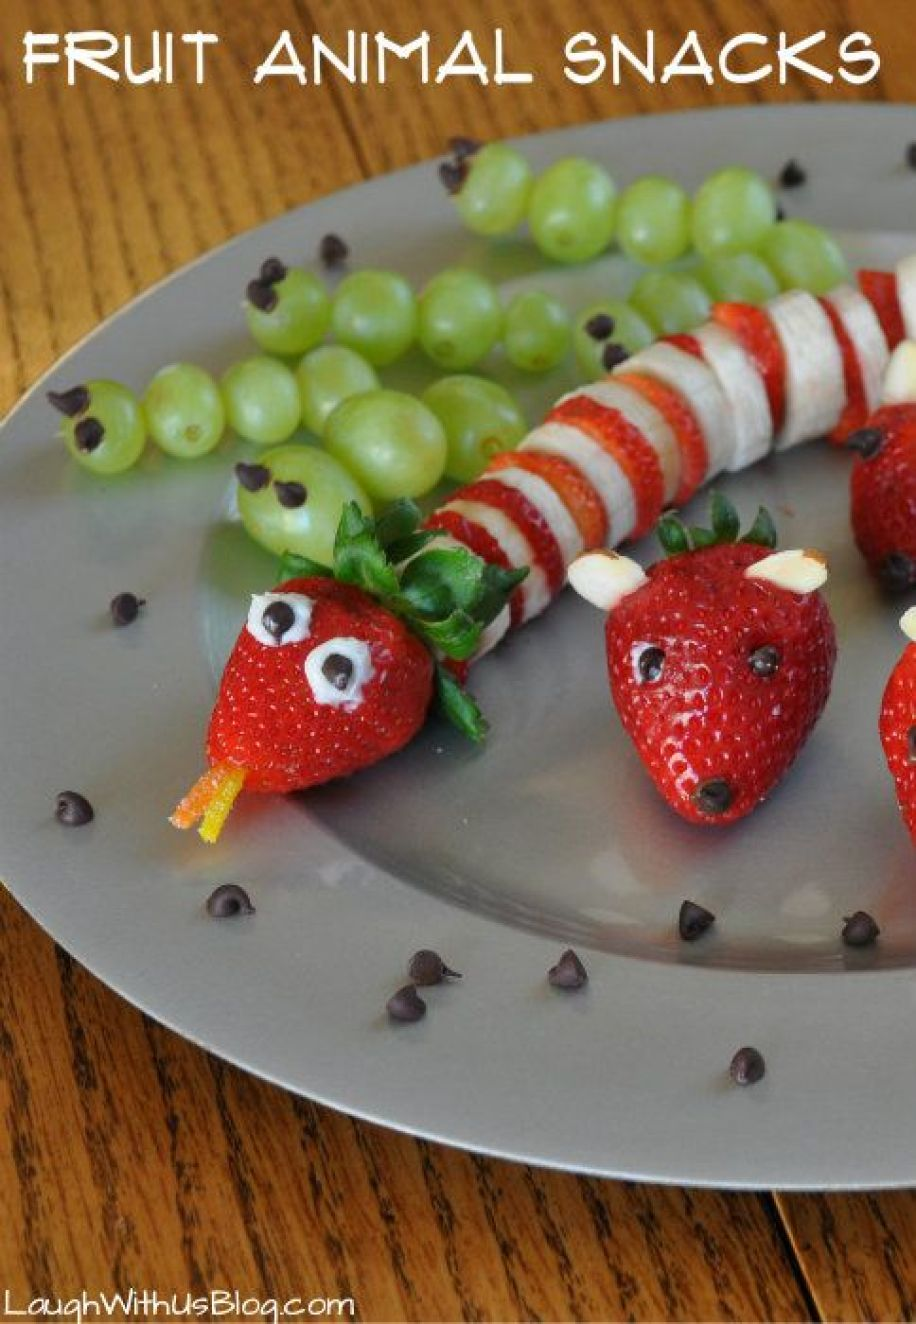 Fruit Snakes by Ride With Us Blog